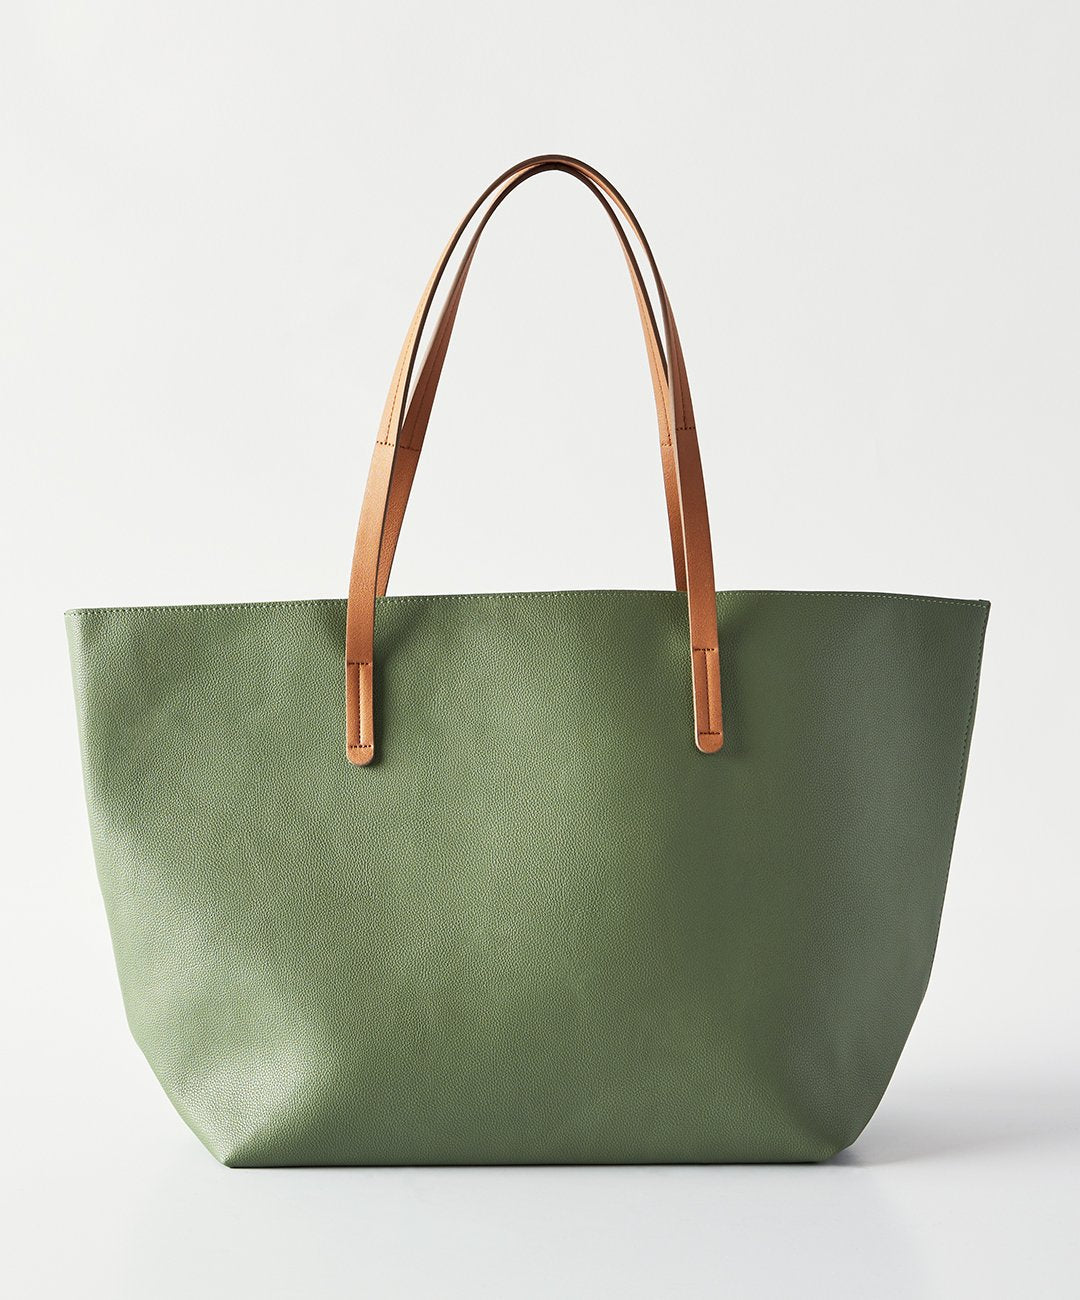 6a2035e62511 Vegan Leather Tote, Army Green